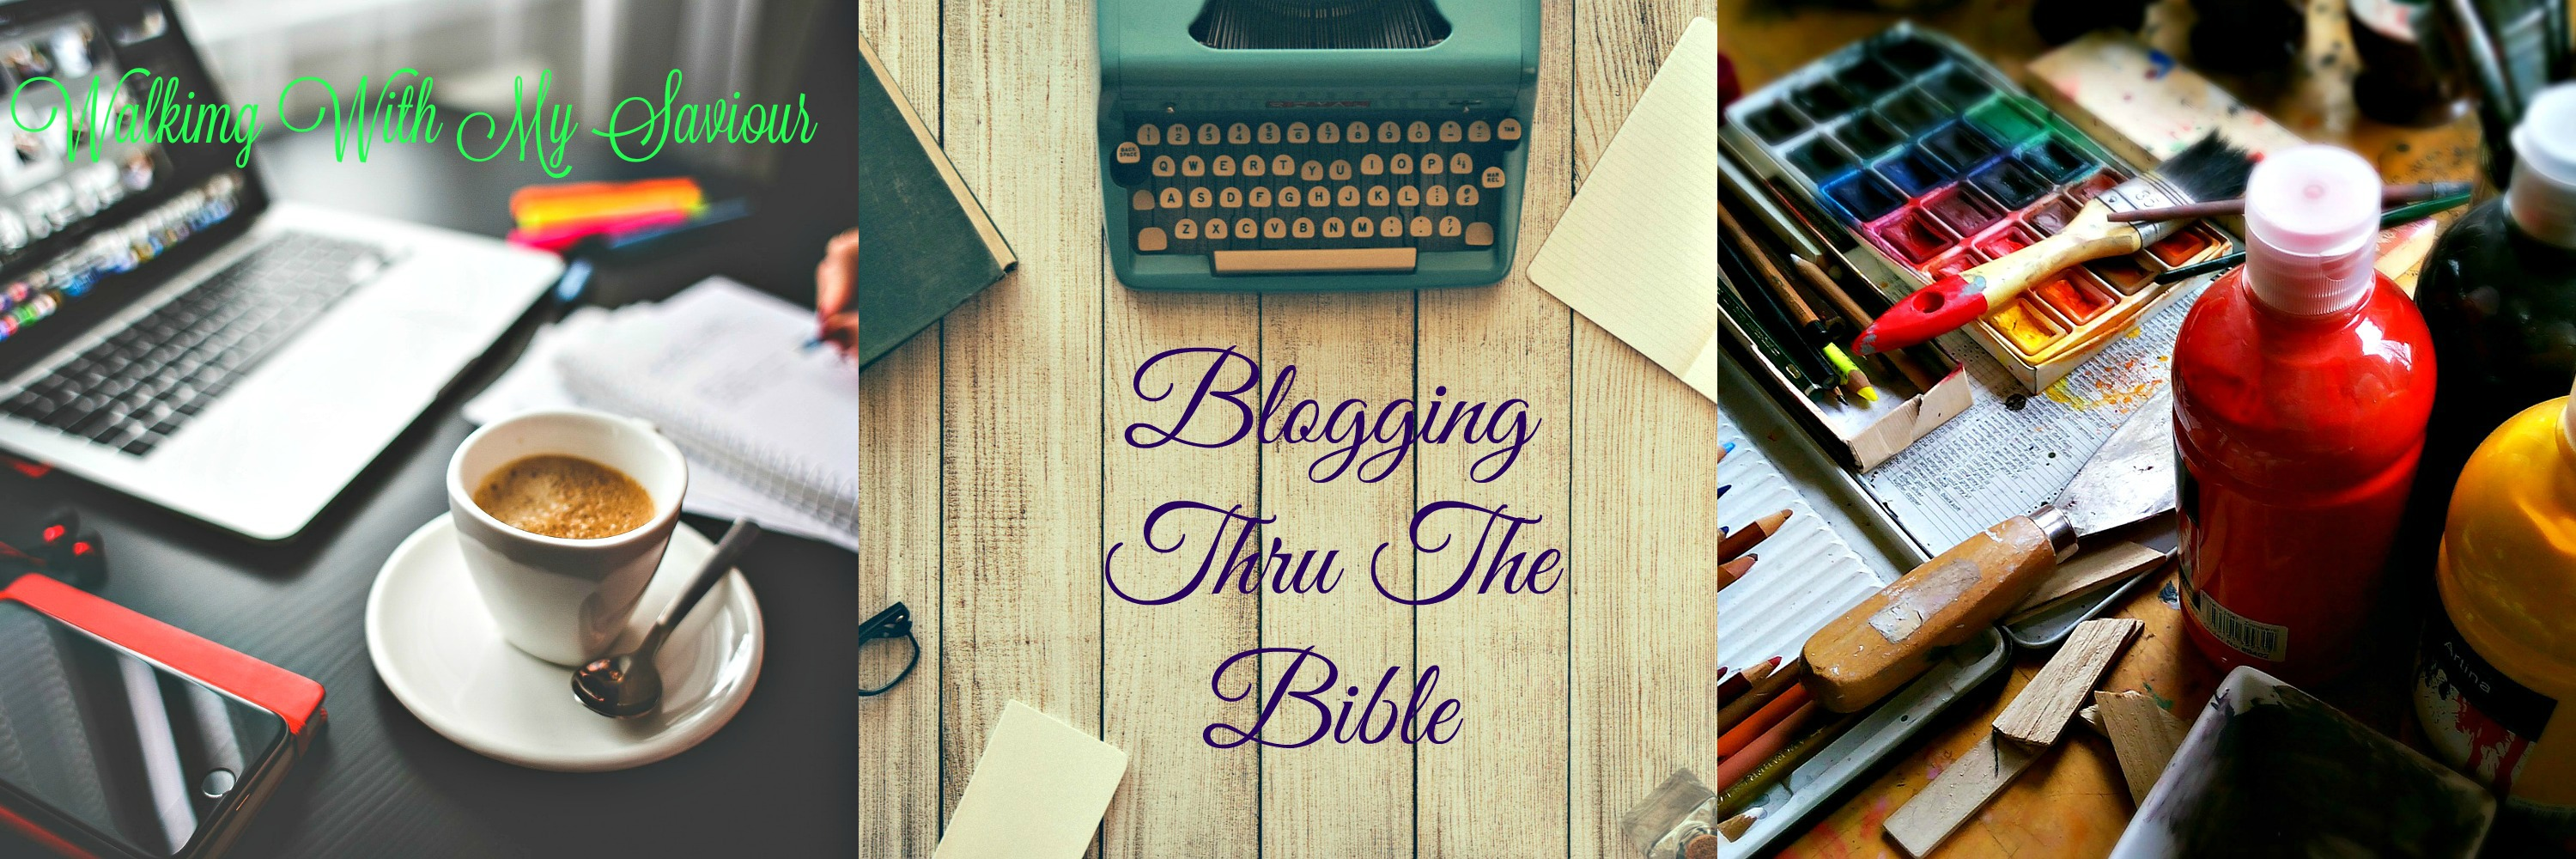 BLOGGING THRU THE BIBLE:  Good Morning Girls Resources {Luke 6-10}